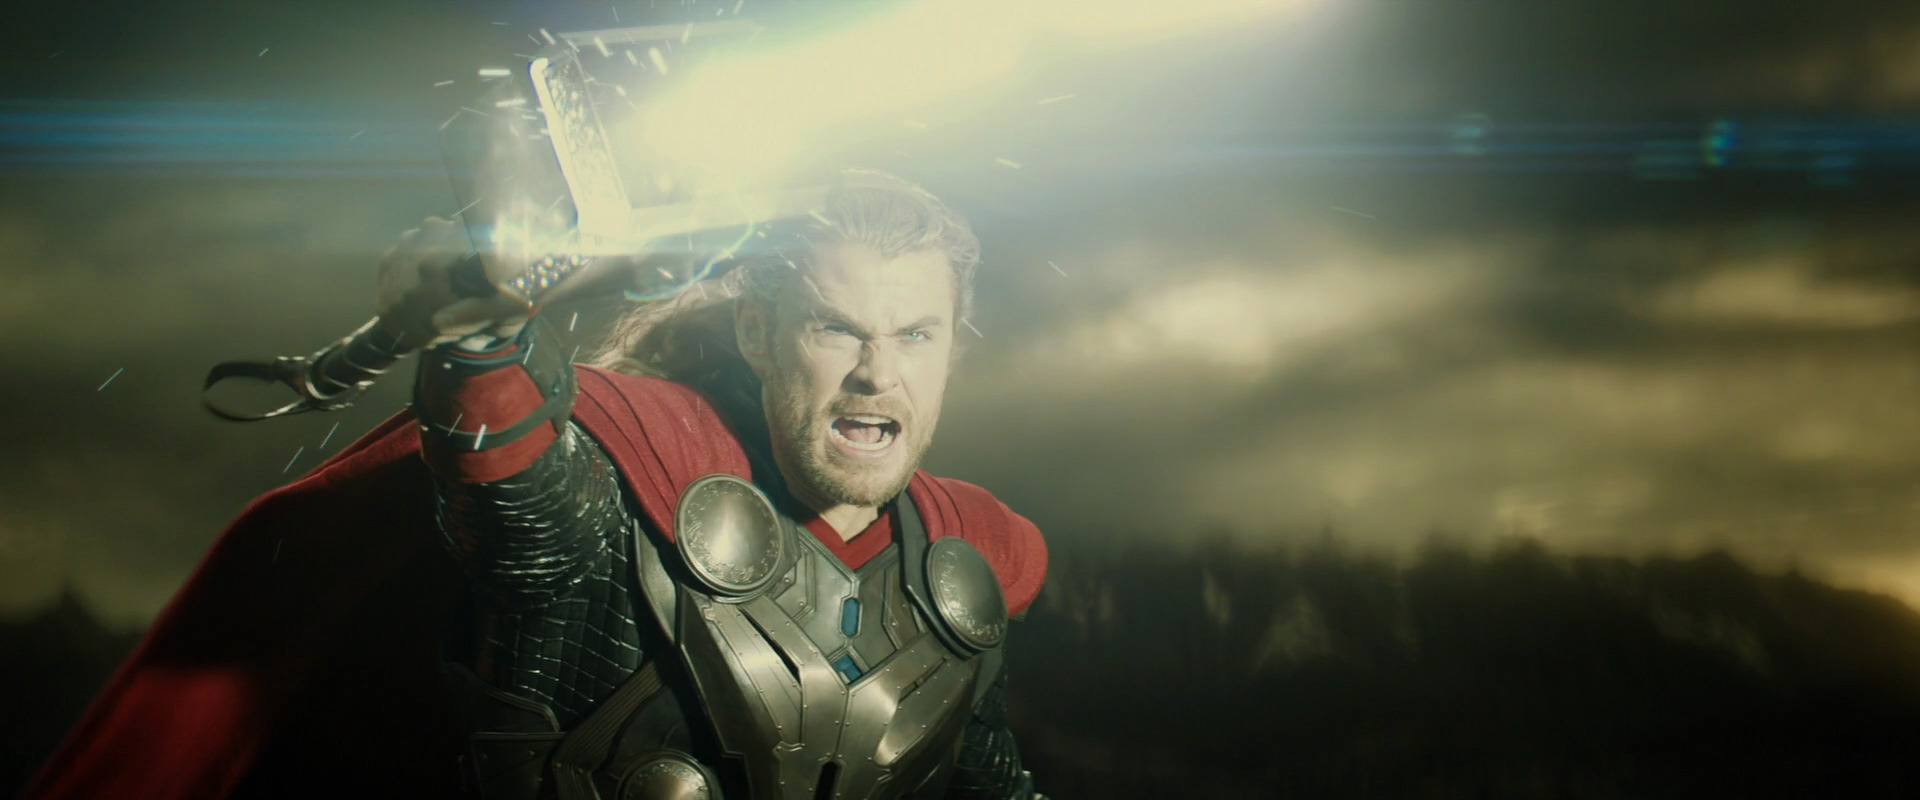 thor shoots frickin lightning out of his hammer in thor 2 the dark world